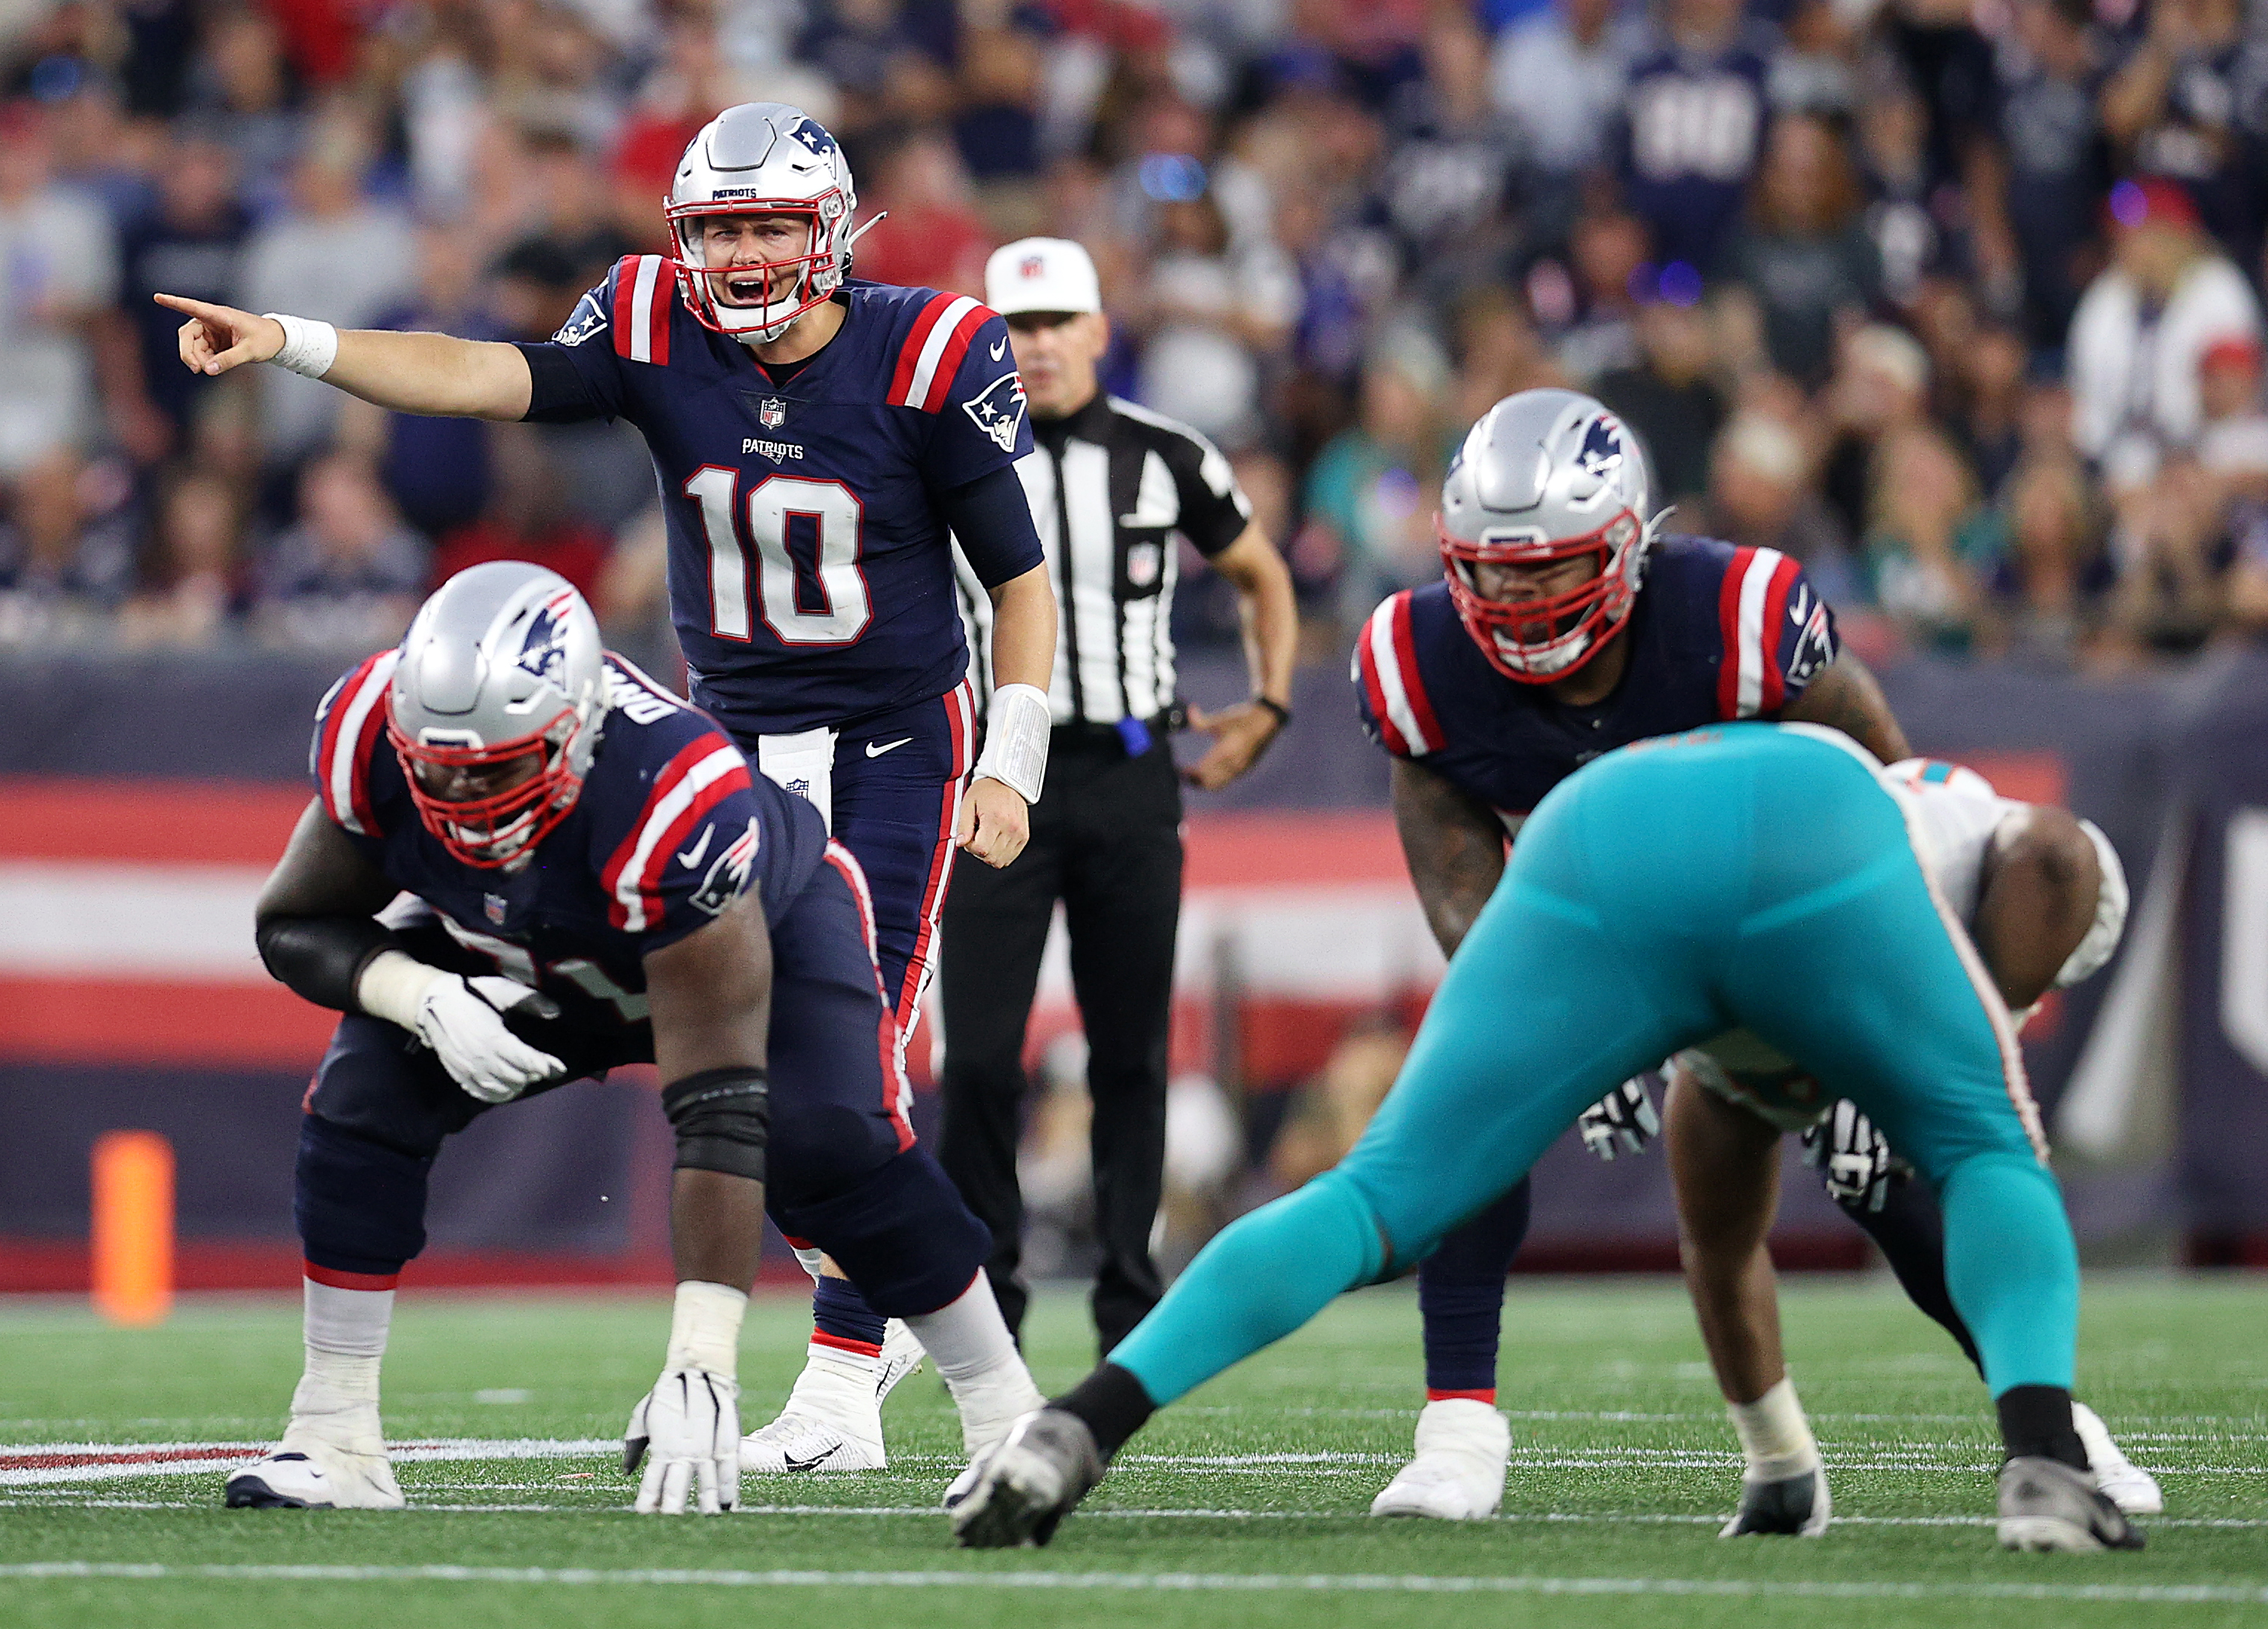 Mac Jones #10 of the New England Patriots directs the offense against the Miami Dolphins at Gillette Stadium on September 12, 2021 in Foxborough, Massachusetts.